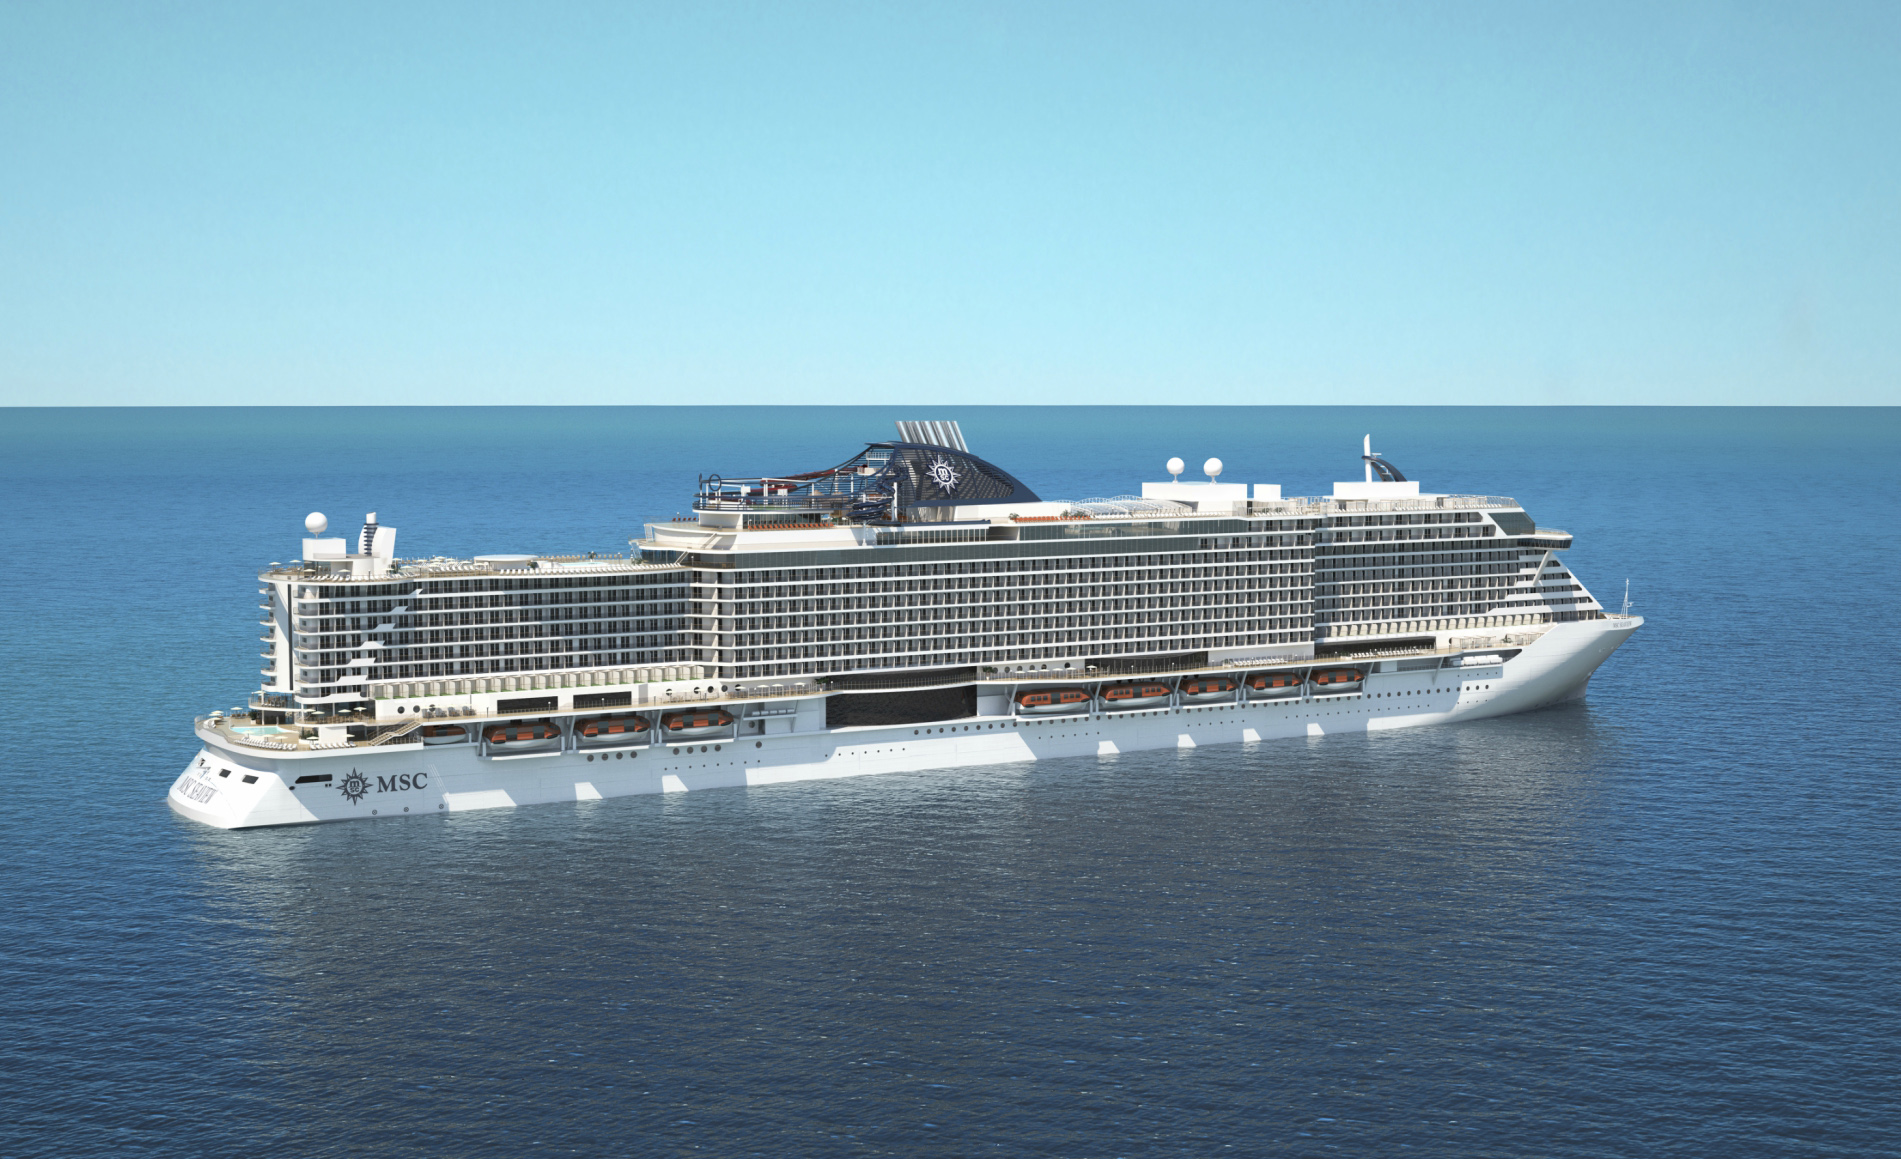 1523266499_msc_seaview_1.jpg